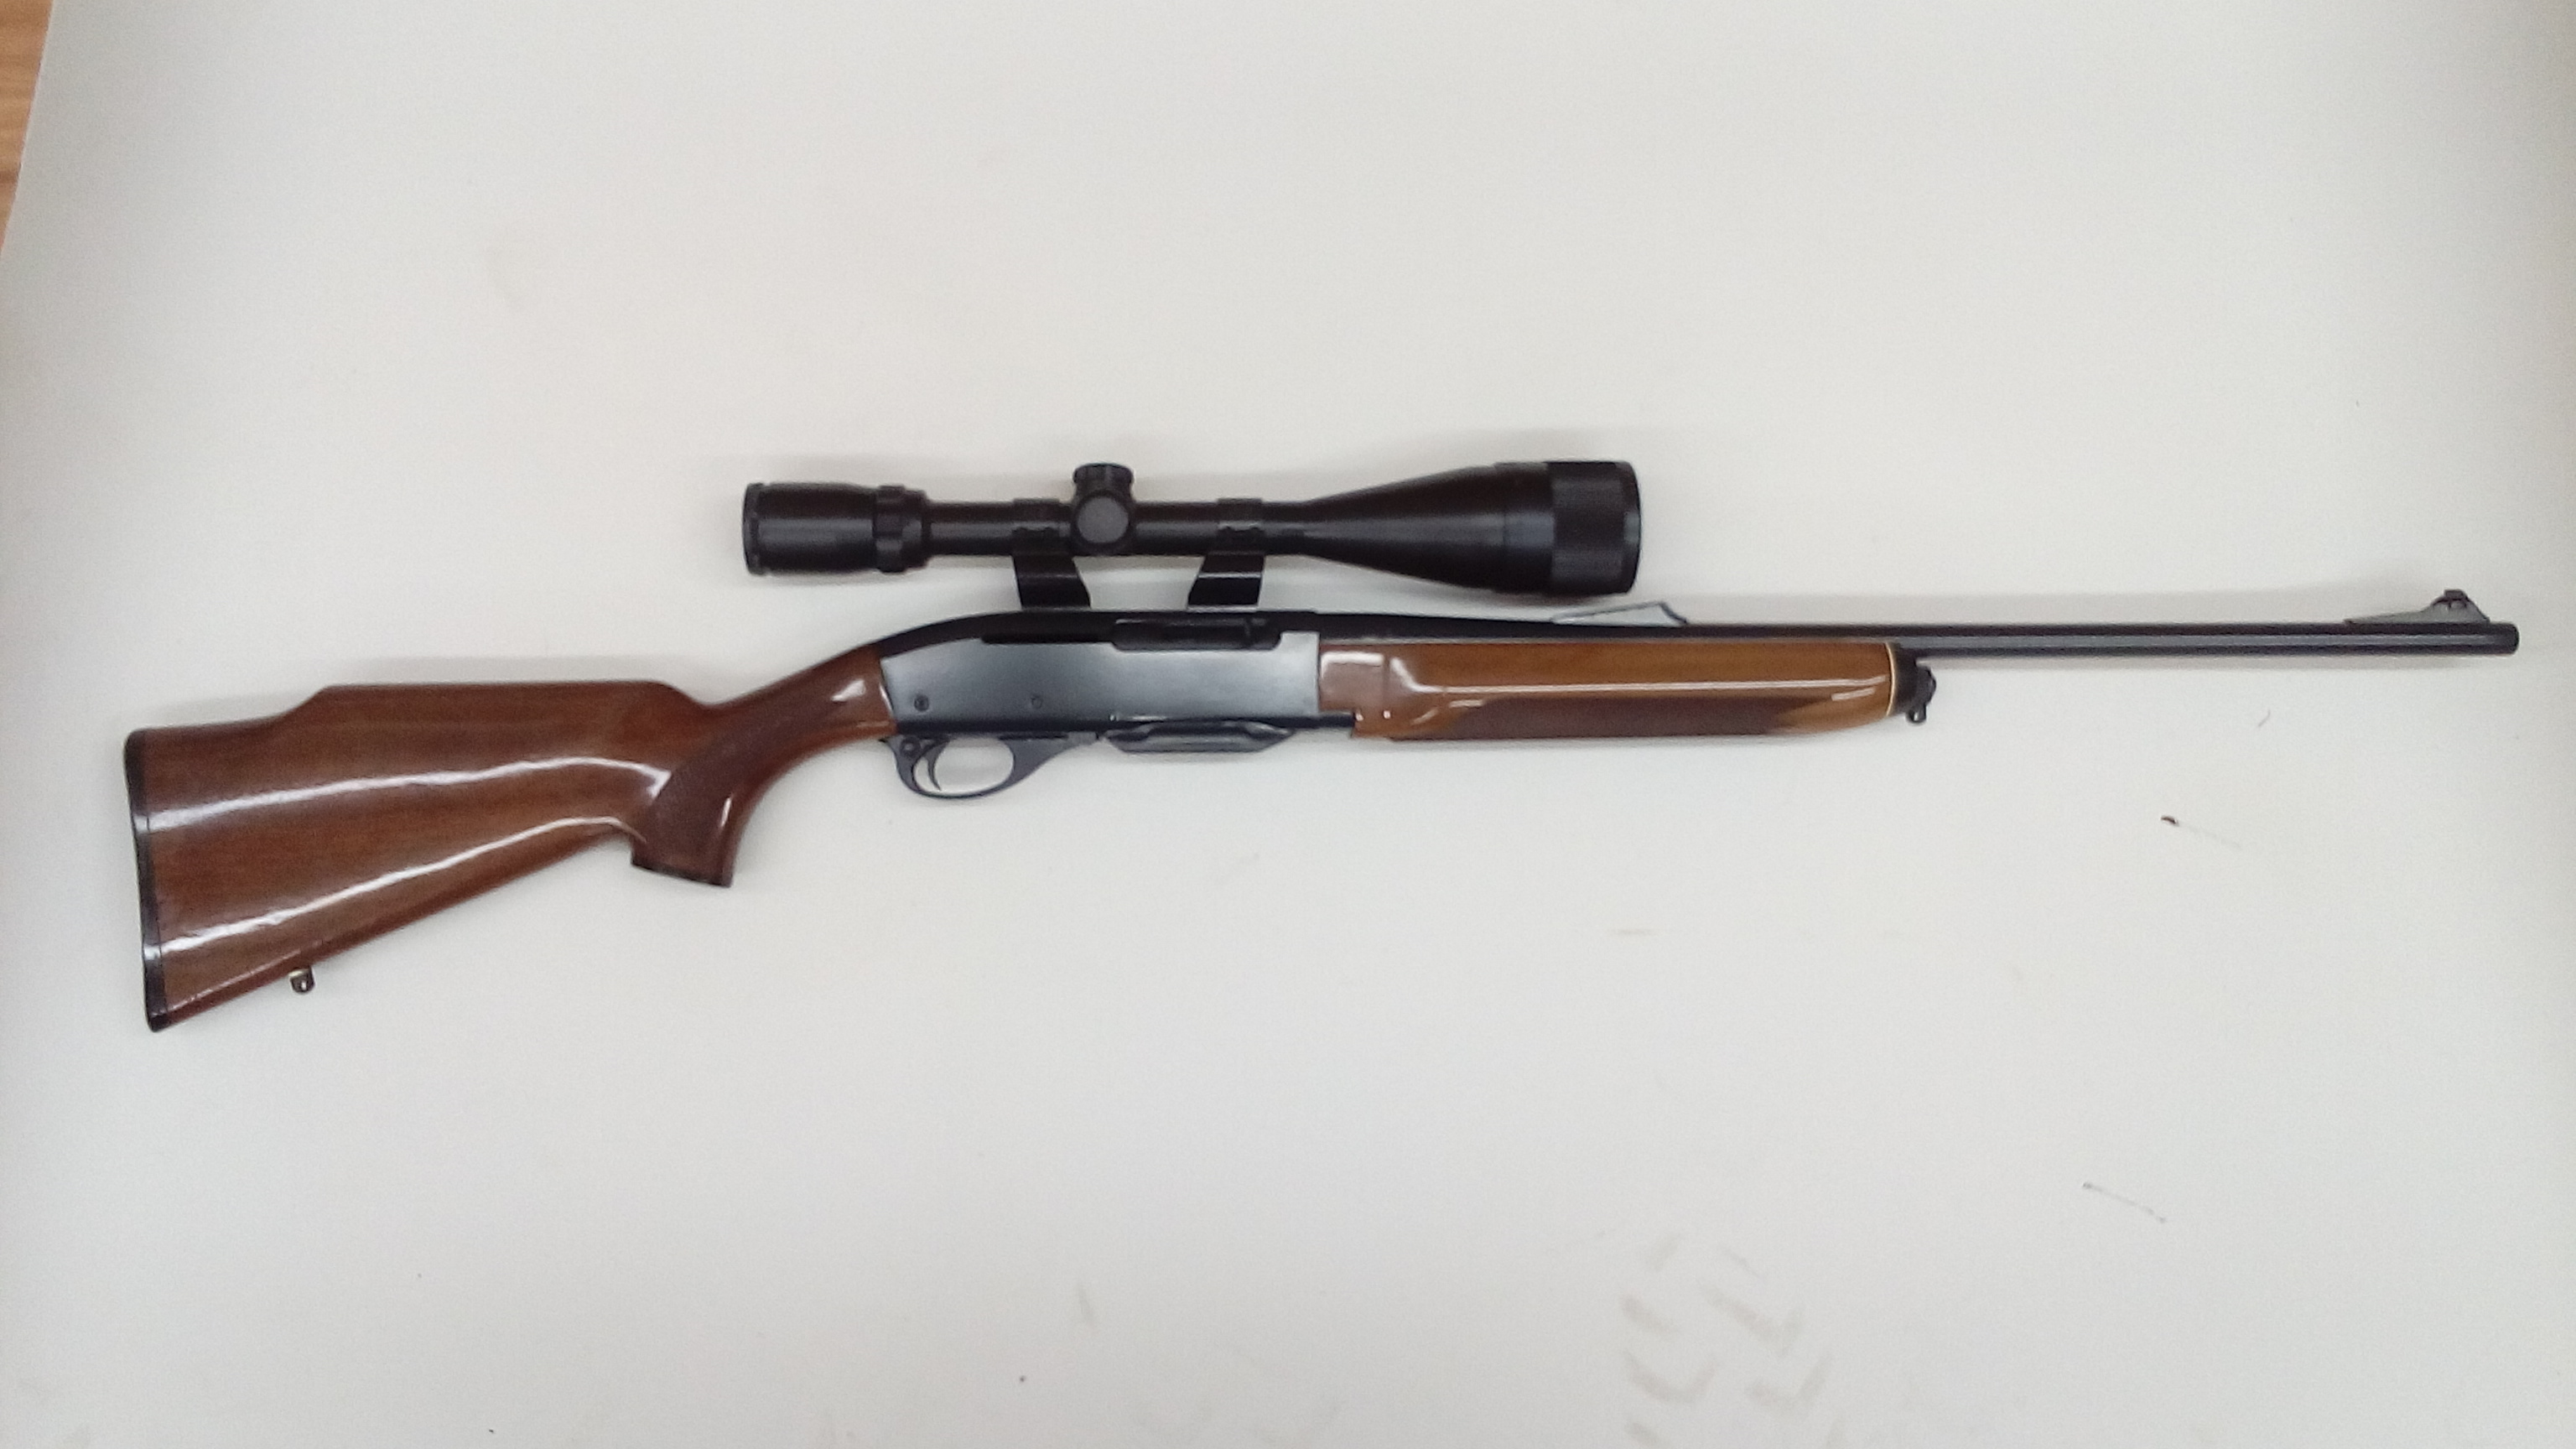 Remington 7400 cerakoted with graphite black